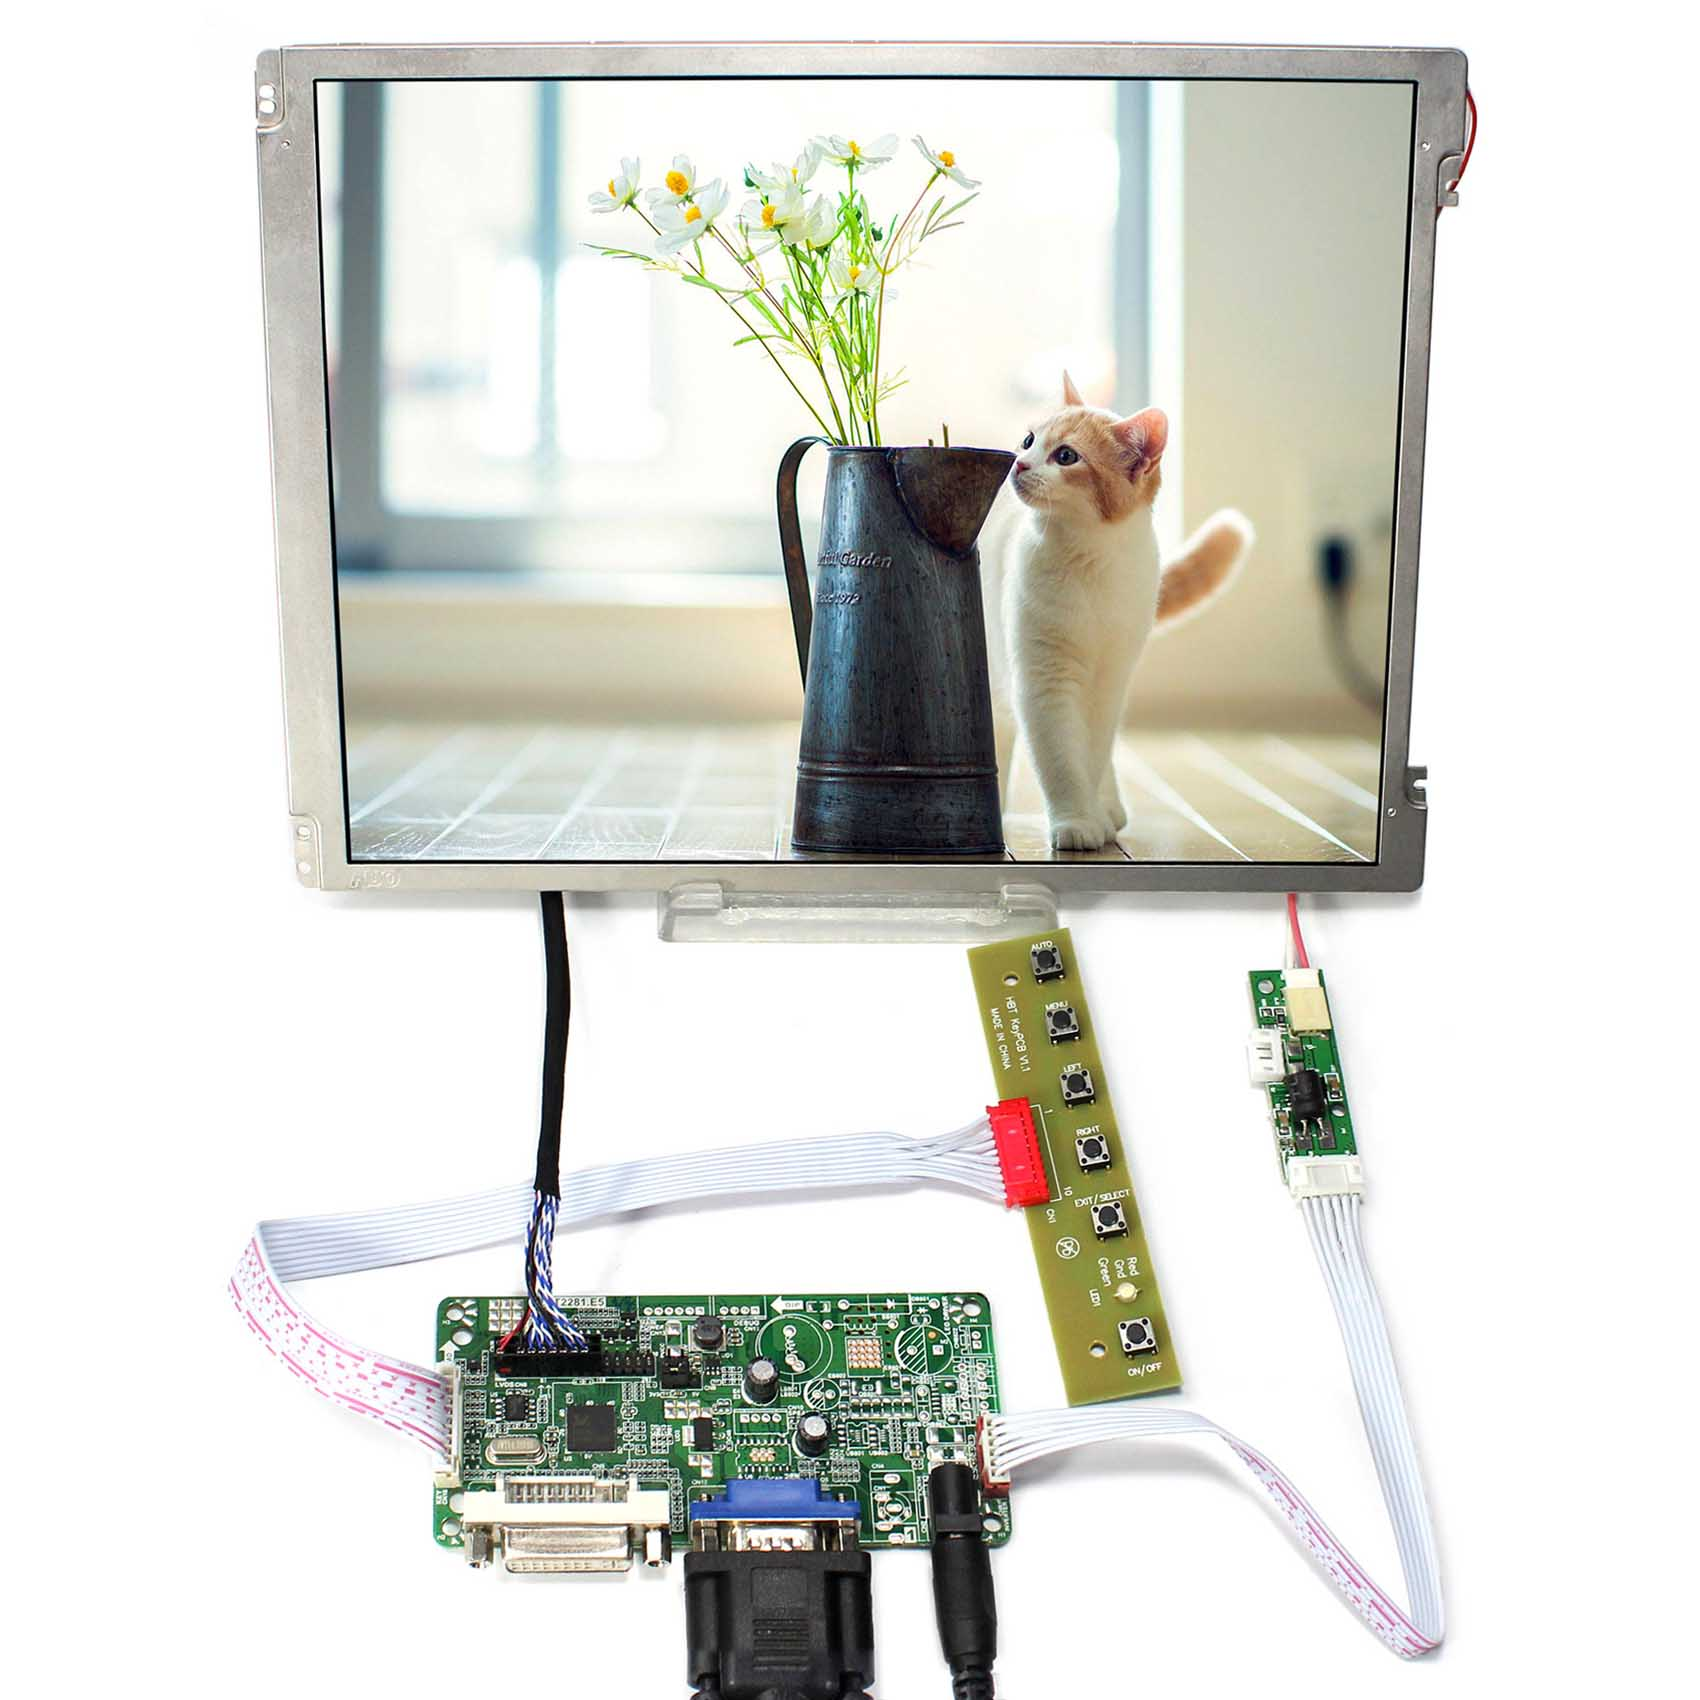 все цены на DVI+VGA LCD Driver Board 10.4inch 800x600 LCD Screen Replace G104SN03-V1 онлайн